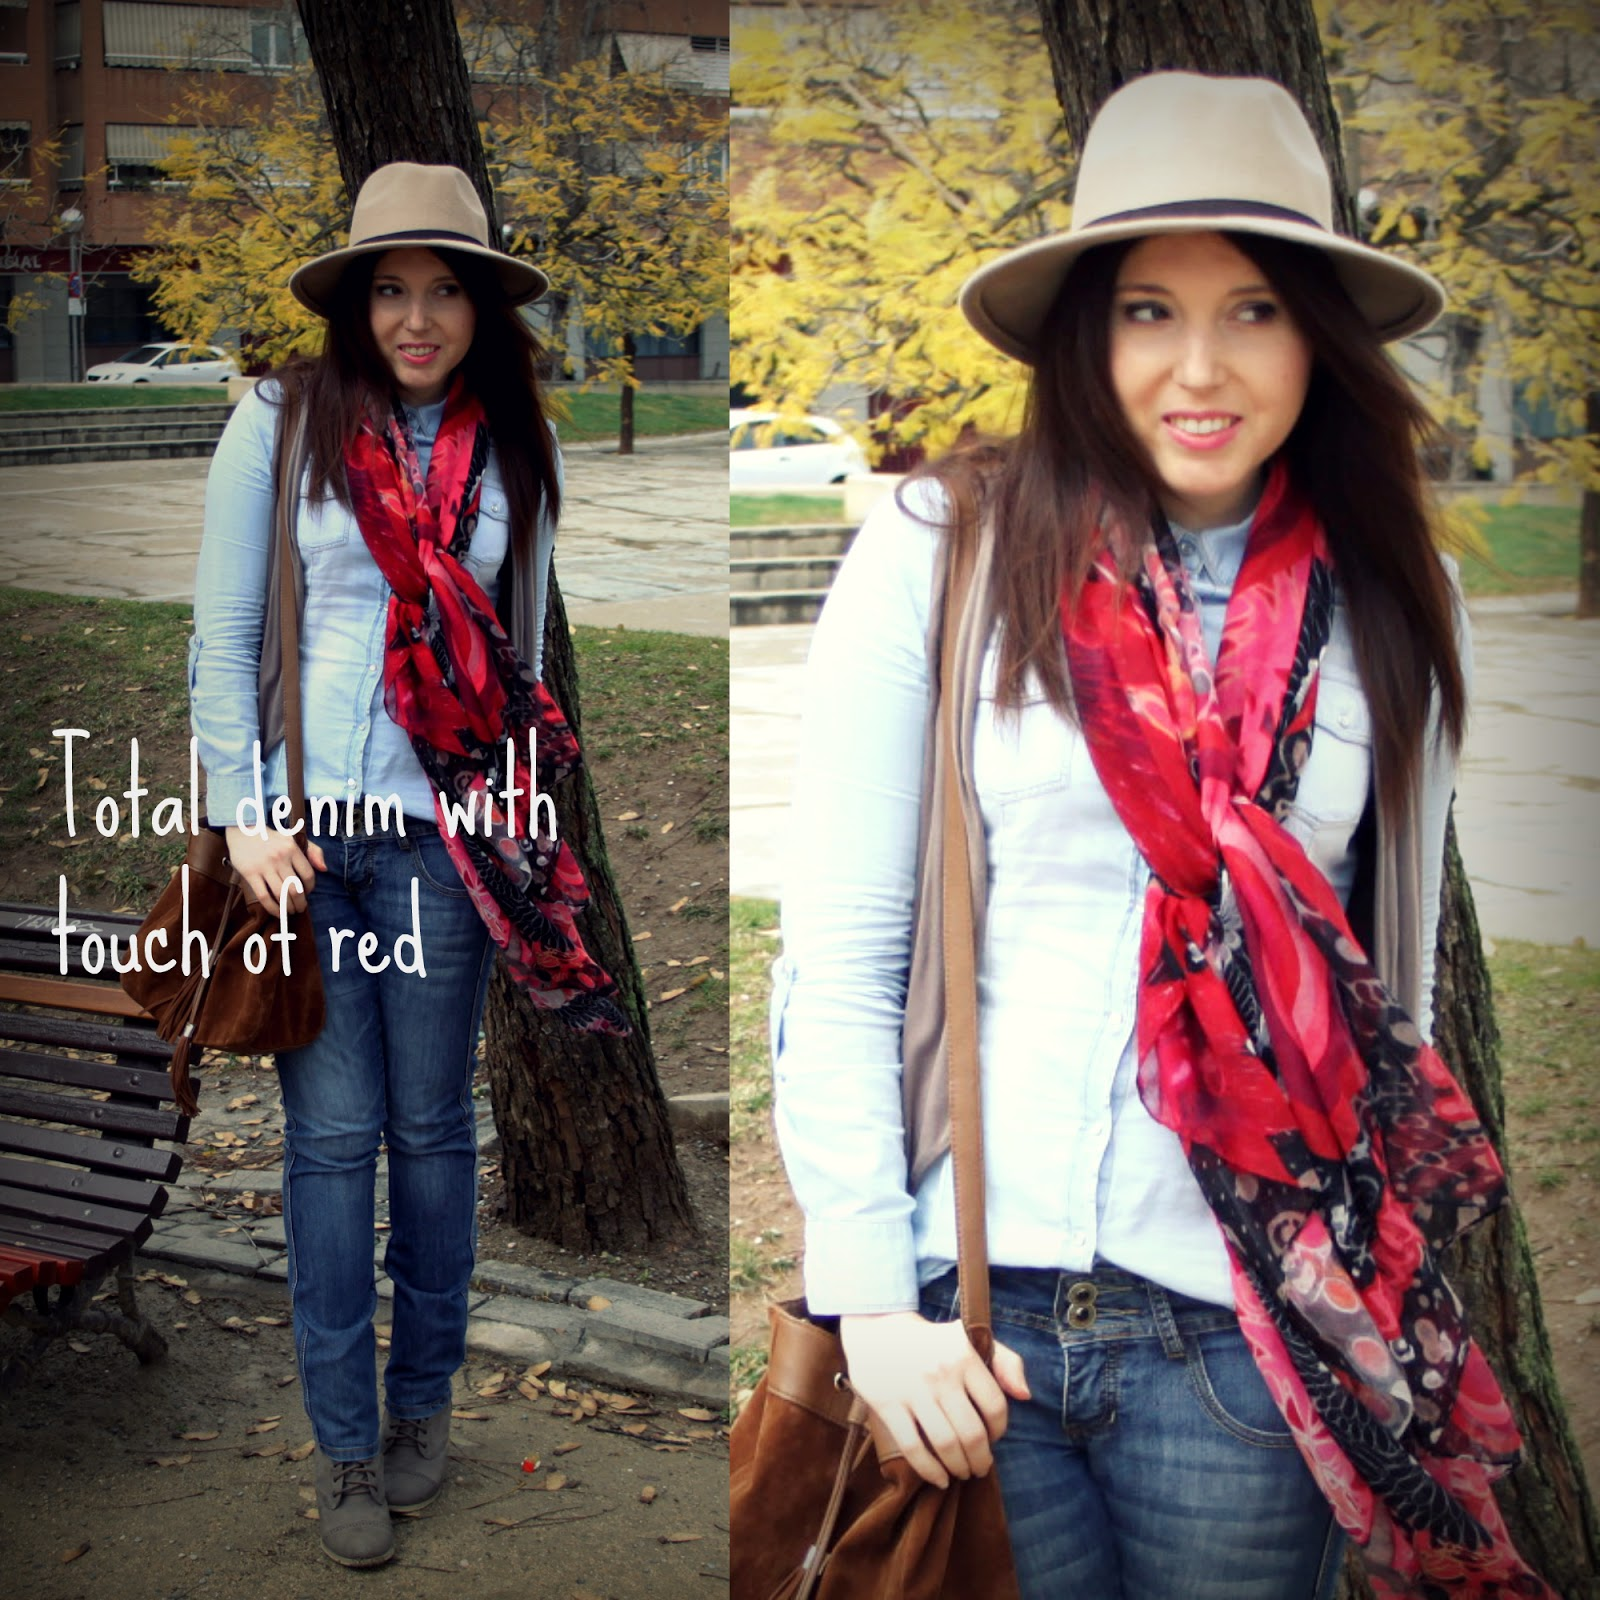 Total Denim with touch of red